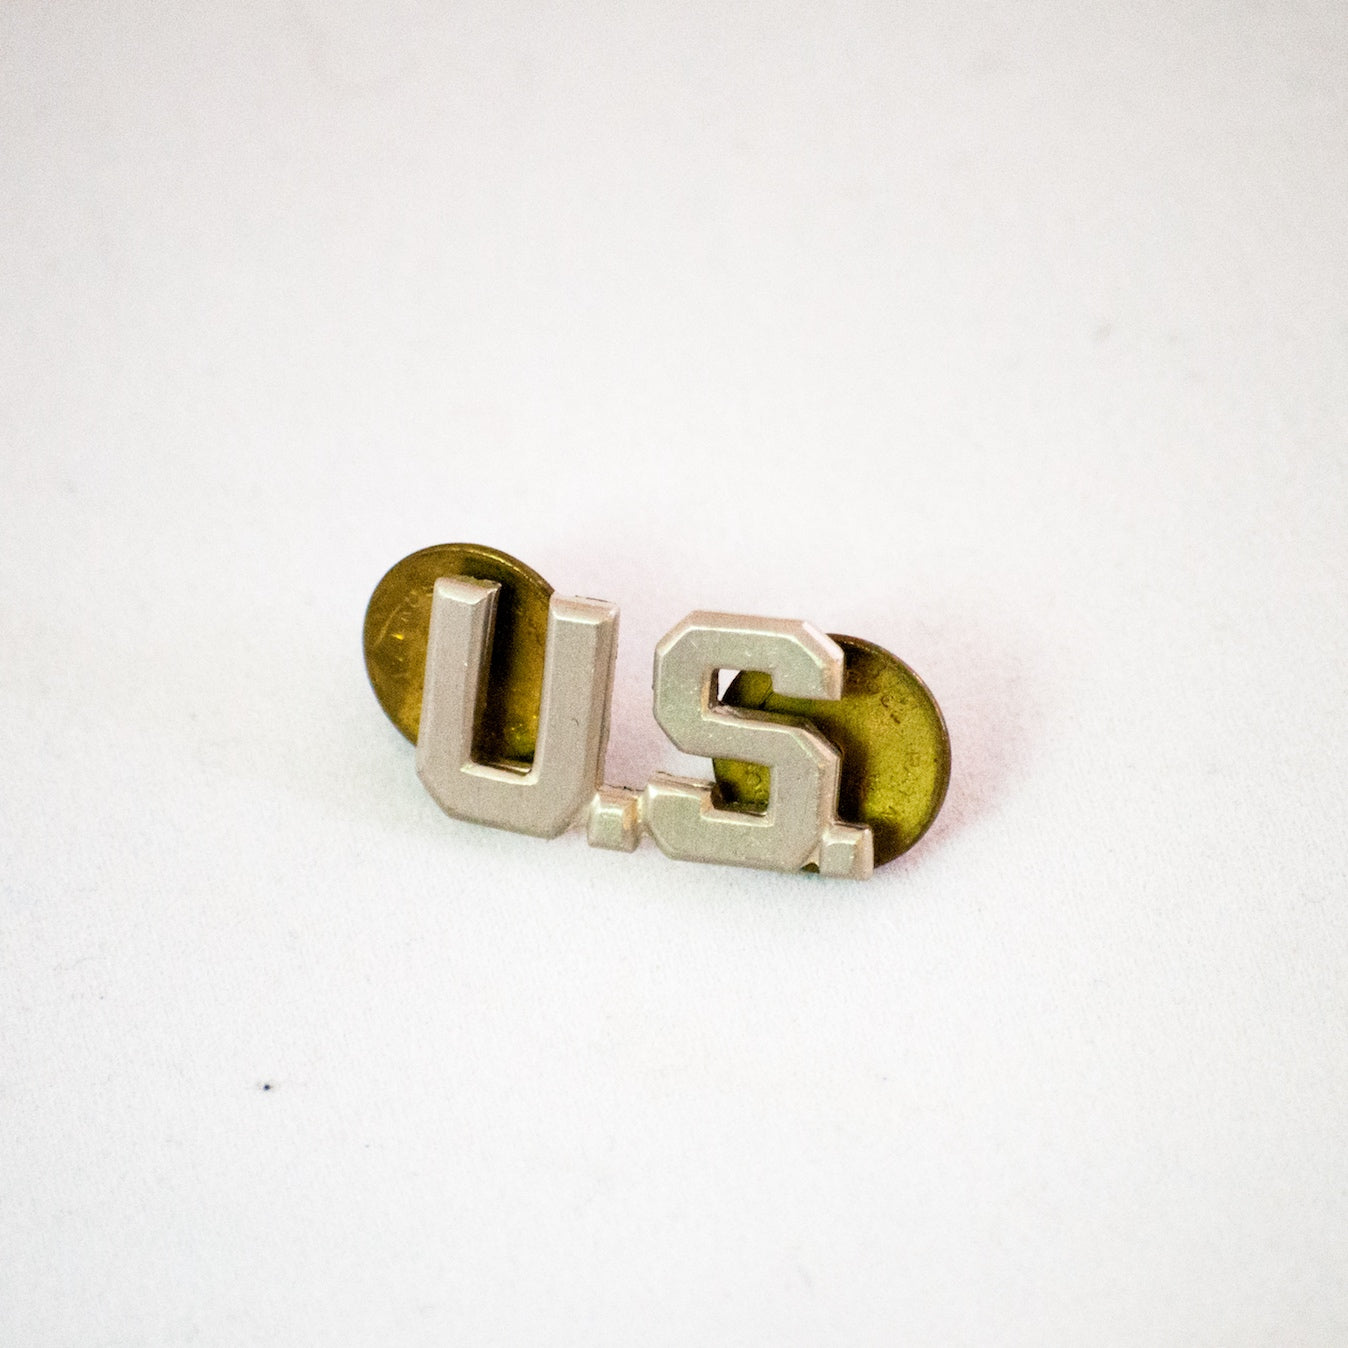 vintage usa military army pins goods